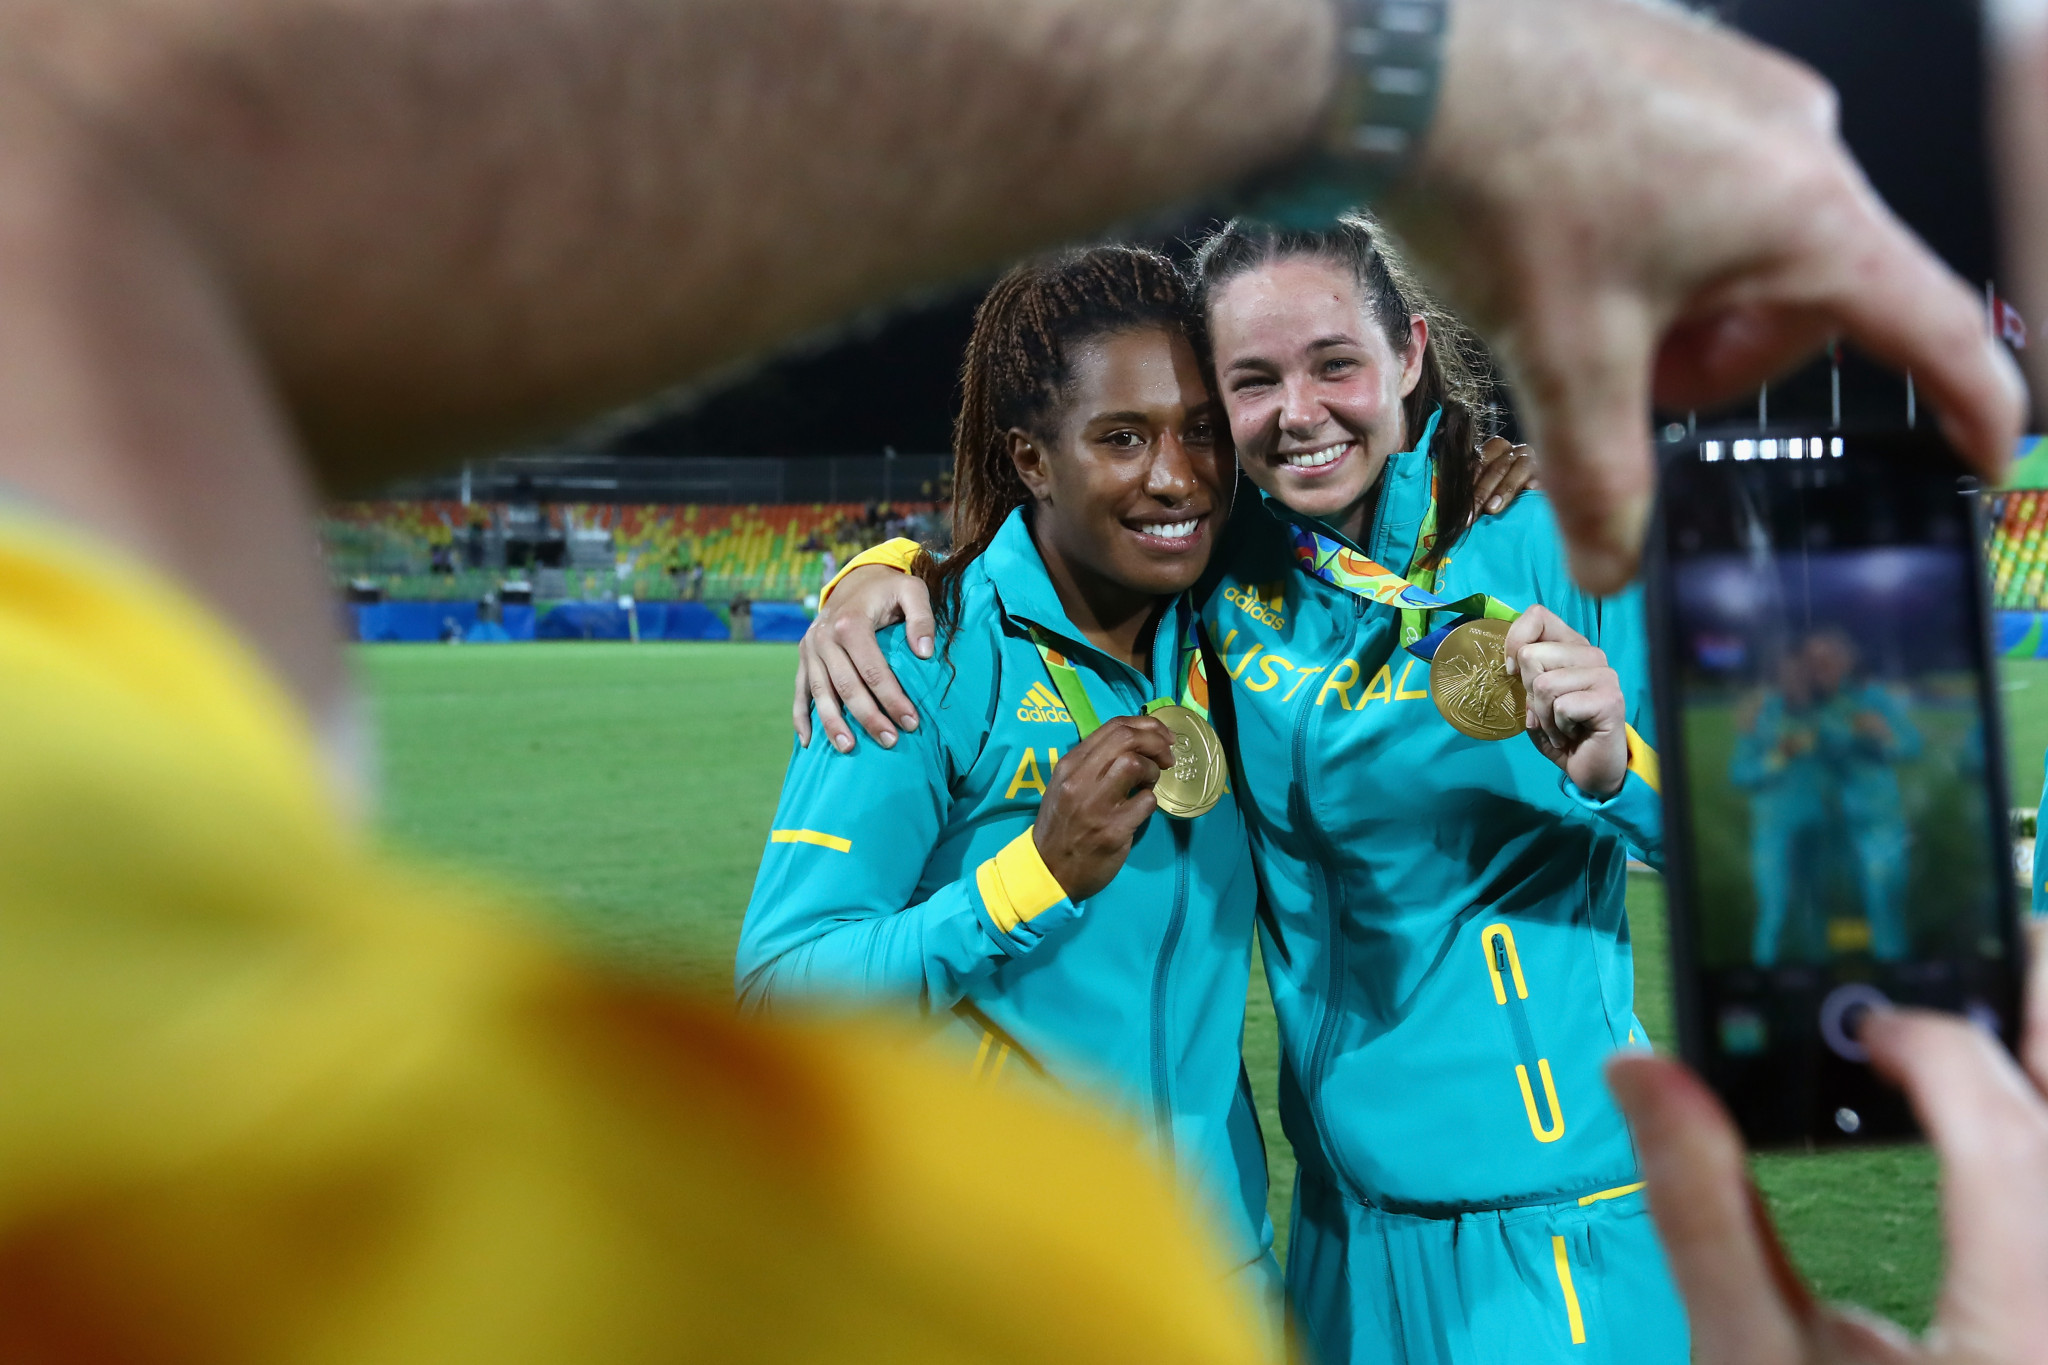 Chloe Dalton, right, scored 34 points as Australia were crowned Olympic champions at Rio 2016 ©Getty Images